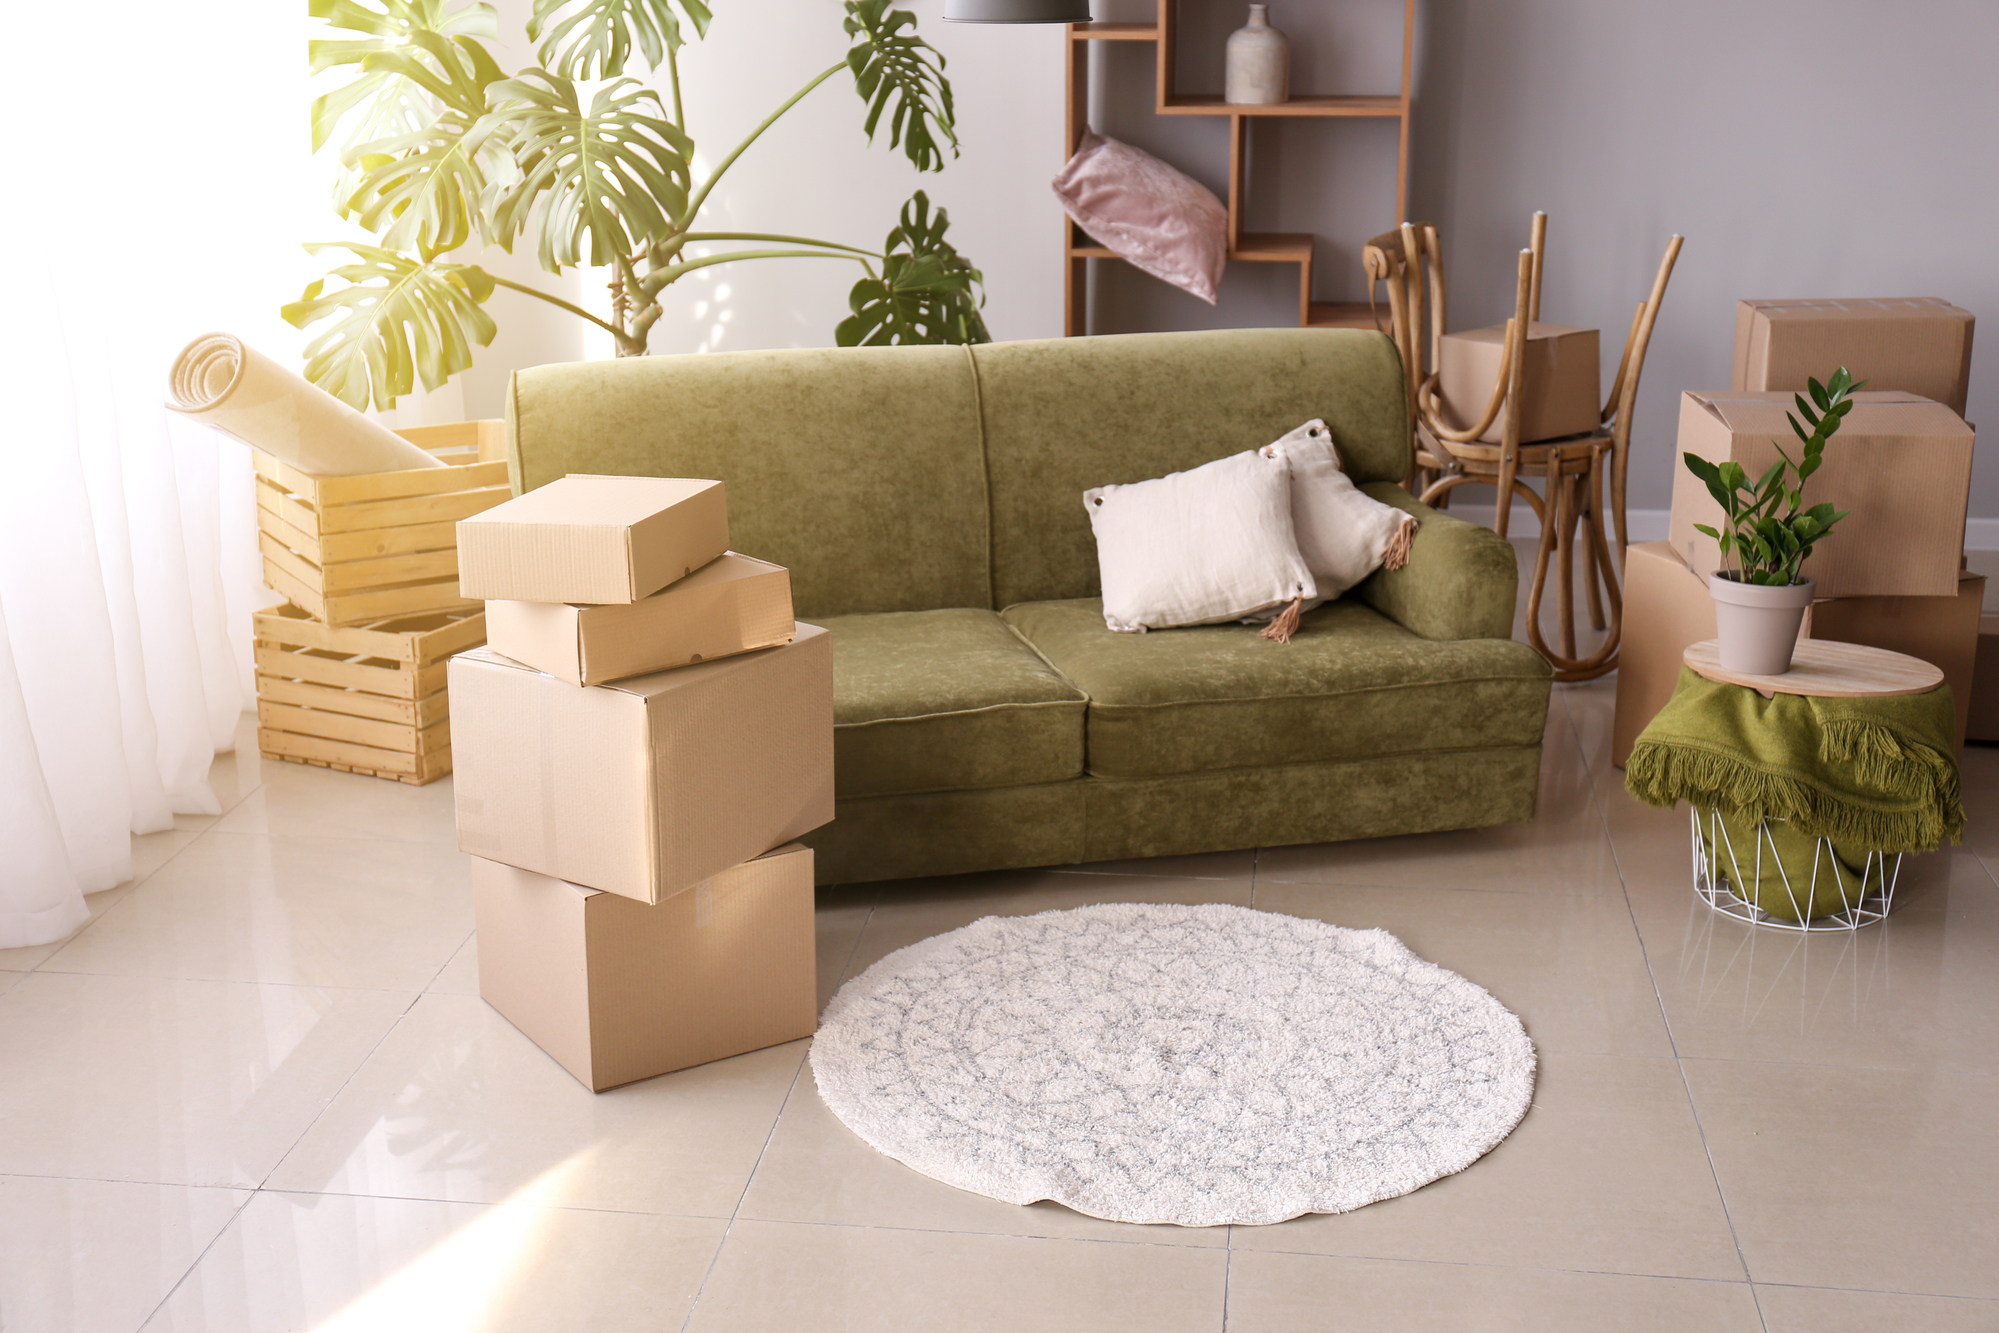 Furniture with moving boxes and belongings in room